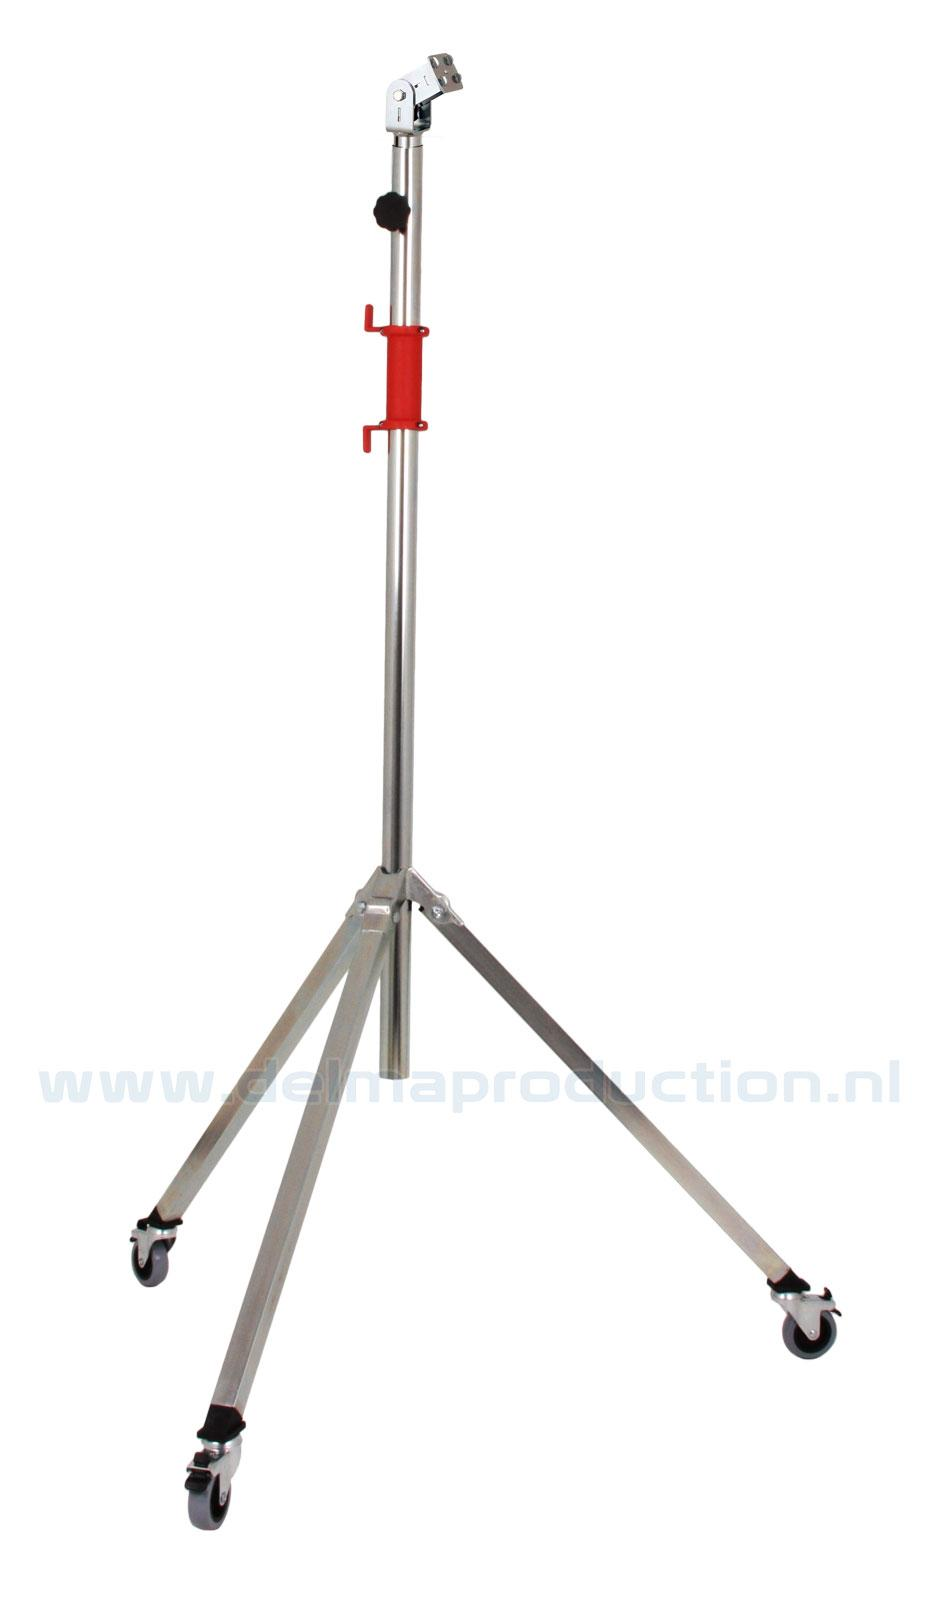 Tripod worklight stand 2-part, mobile, quick release system